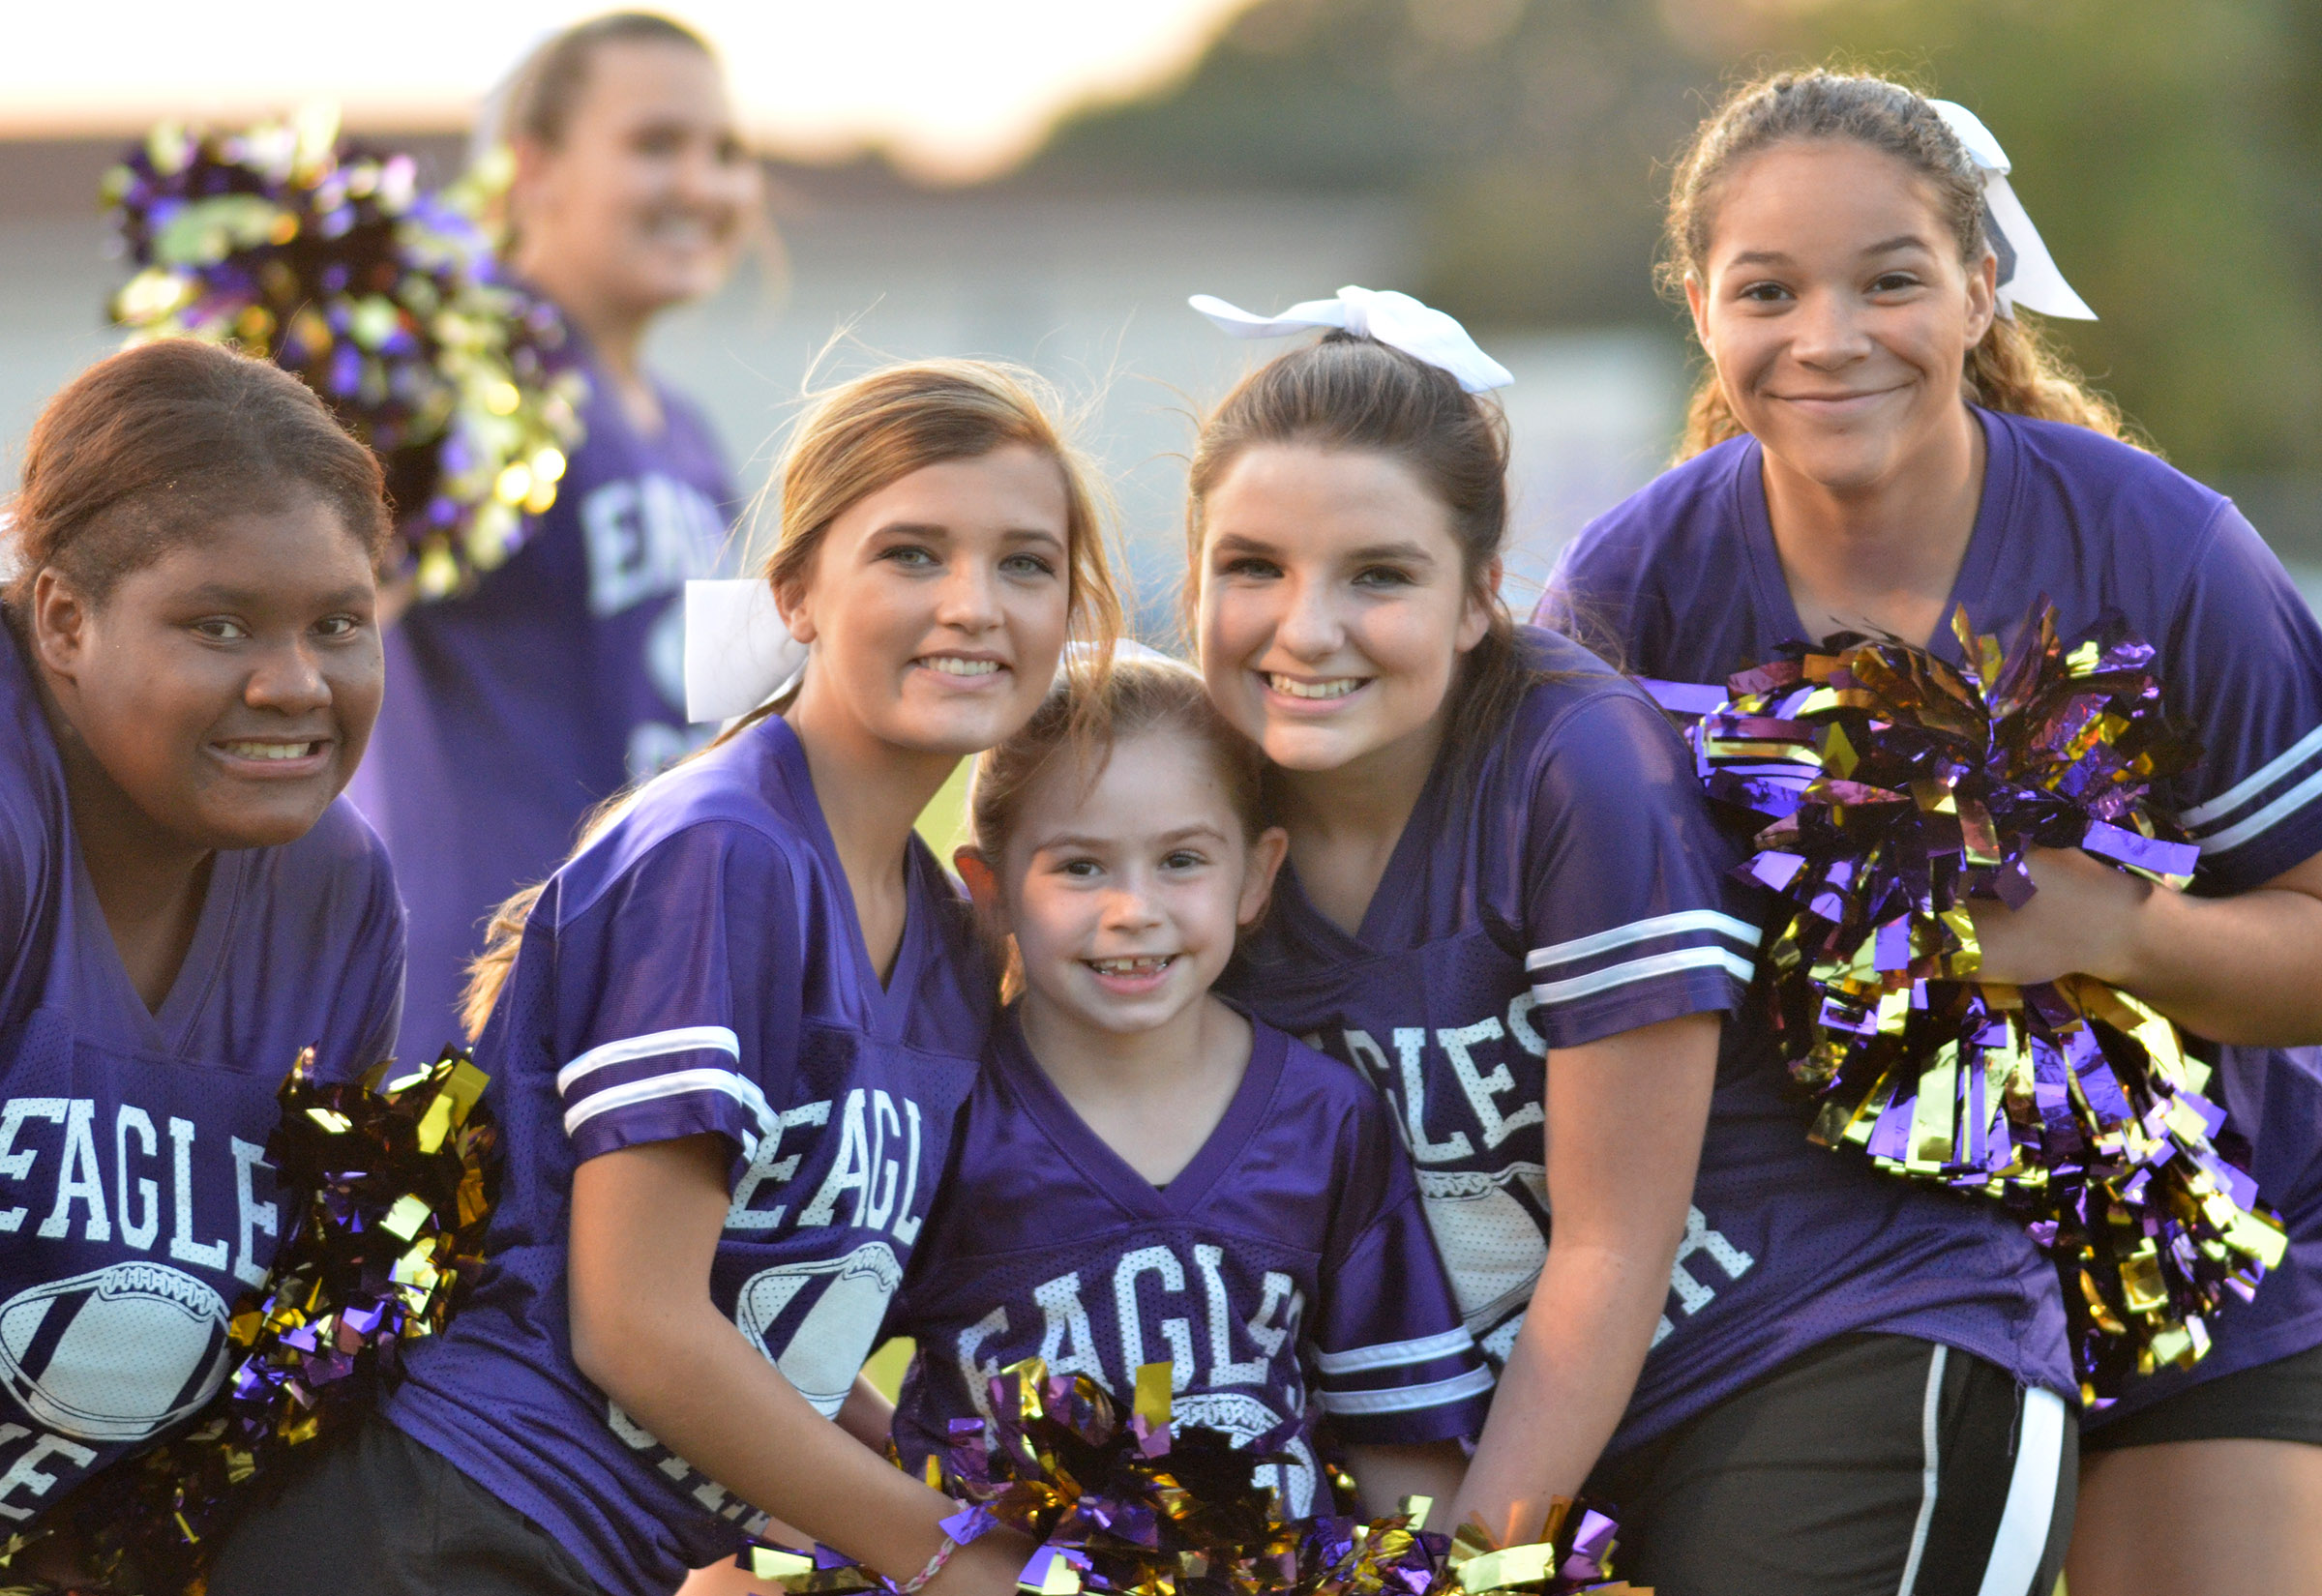 CHS cheerleaders, from left, sophomore Jakyia Mitchell, freshman Carly Adams, Campbellsville Elementary School second-grader Lainey Price and sophomores Sydney Wilson and Taliyah Hazelwood get ready to run on the field with their football team. In back is sophomore Haley Morris.